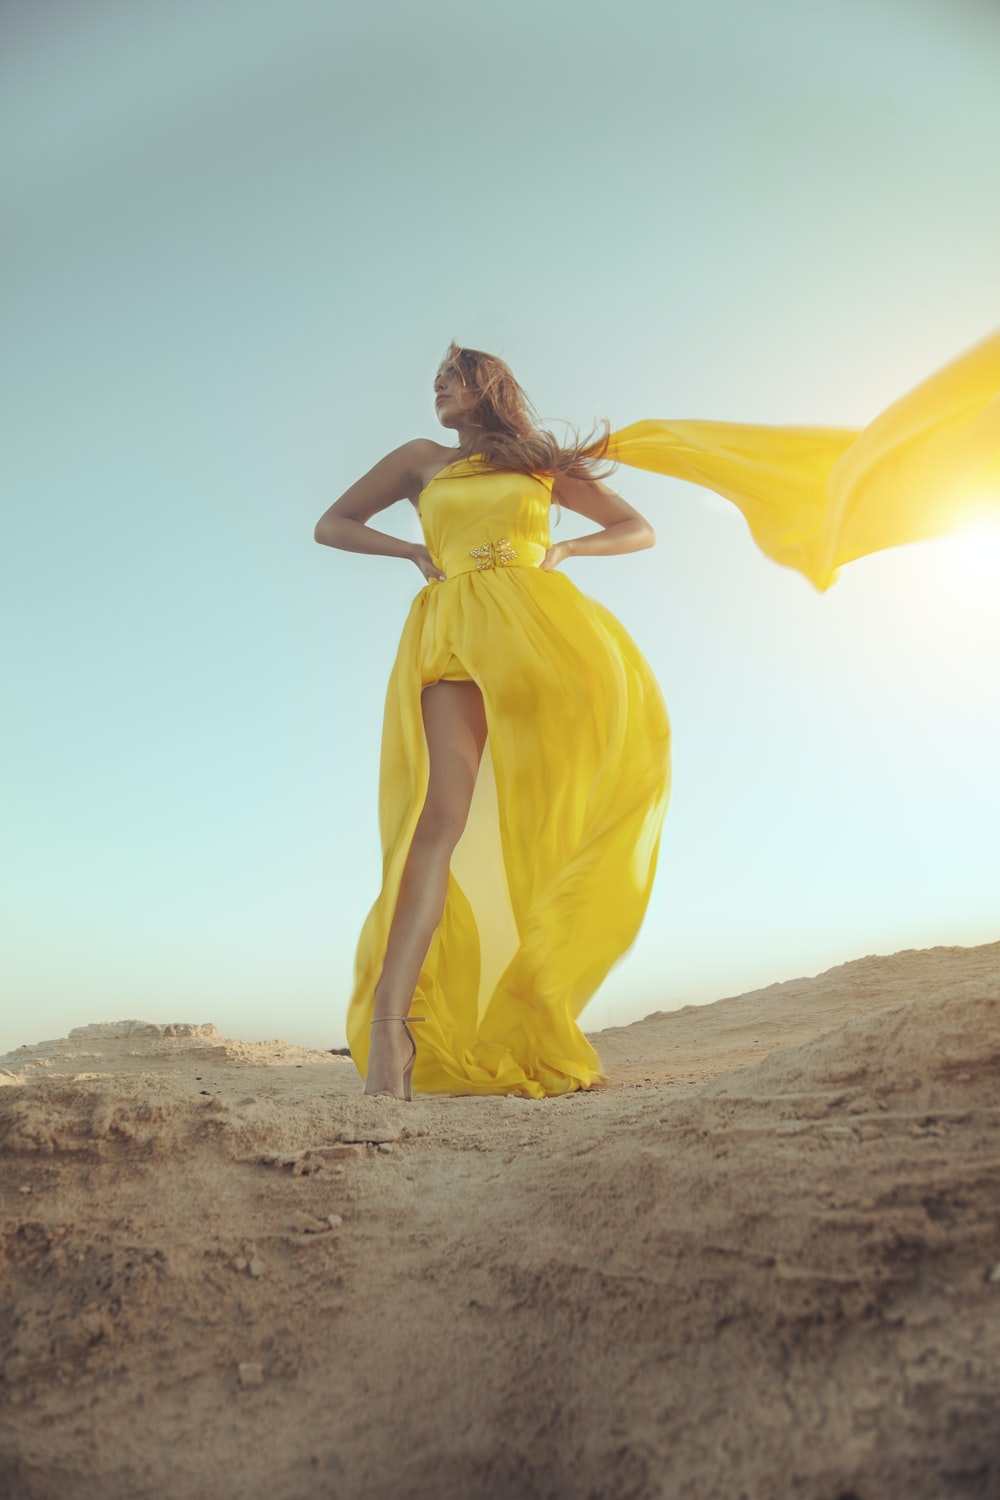 woman in yellow dress standing on brown sand during daytime